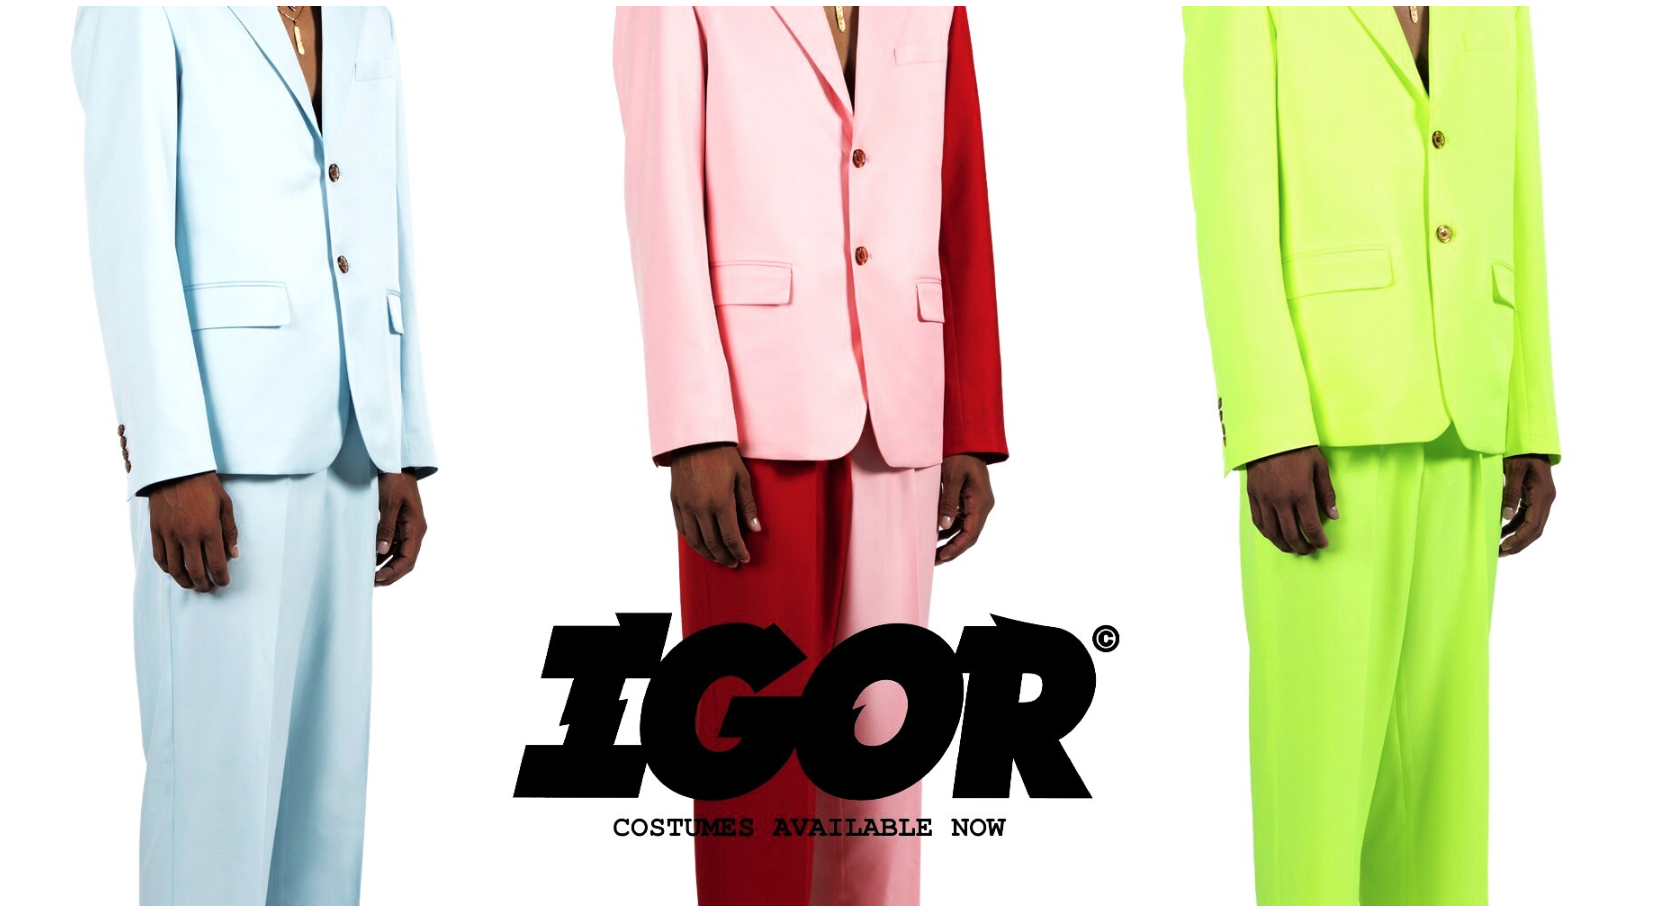 Tyler, the Creator Drops IGOR Costumes Just in Time for Halloween